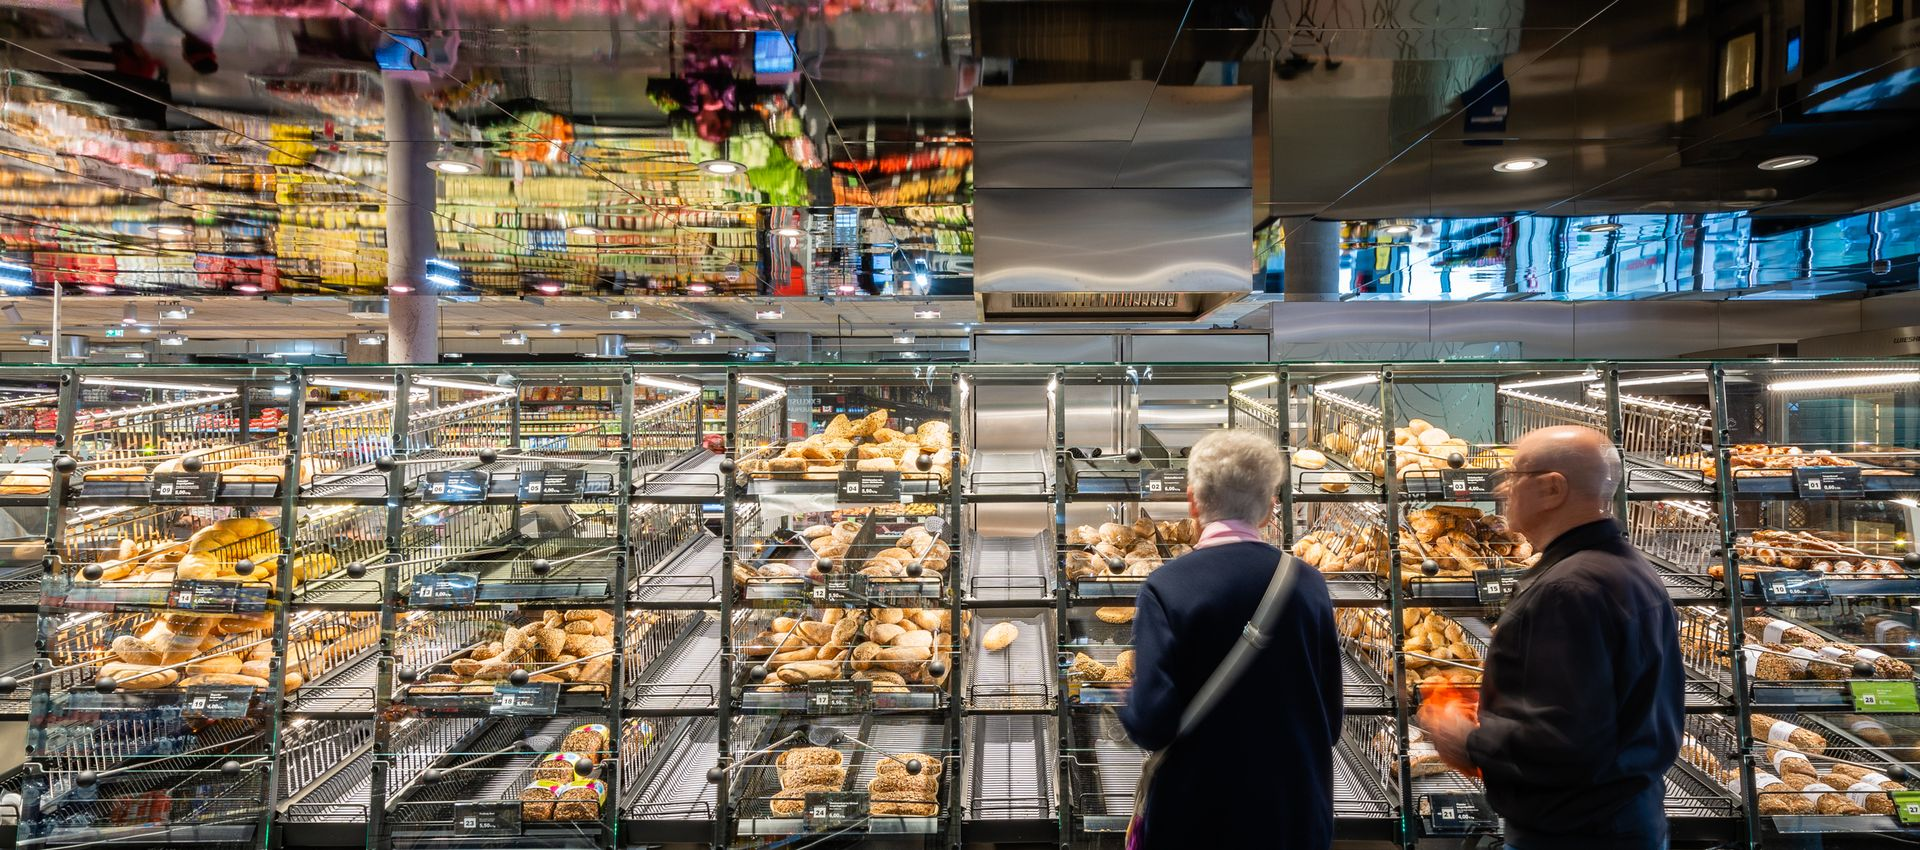 Bäckerei in Südtirol - Therese Mölk